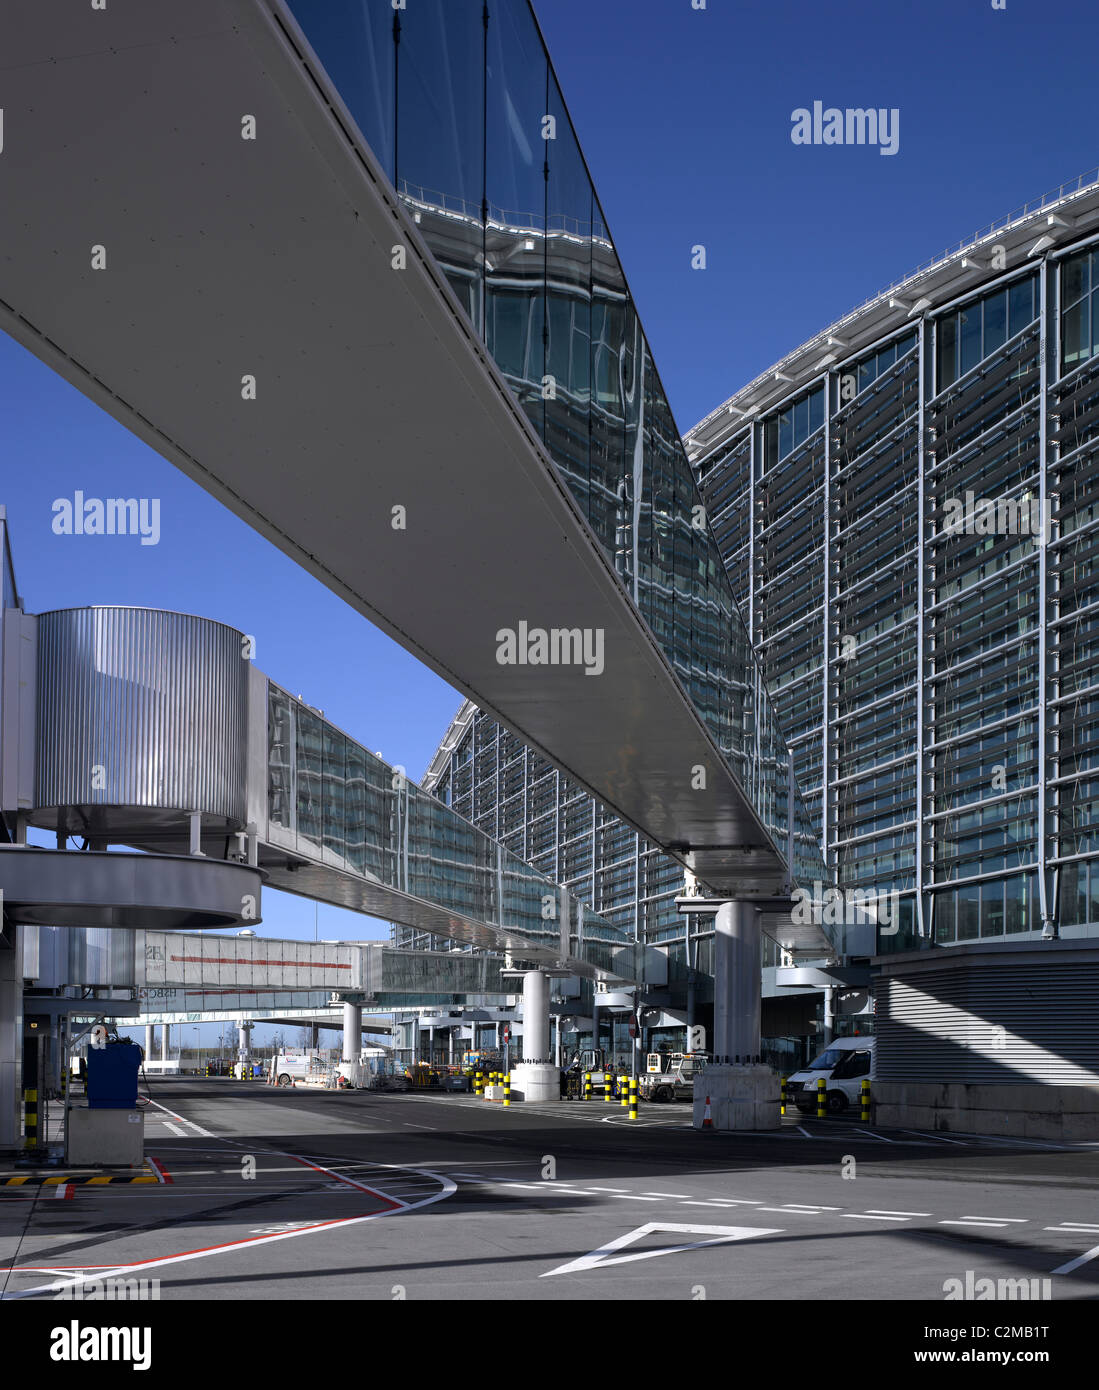 Terminal 5, Heathrow Airport, London. - Stock Image